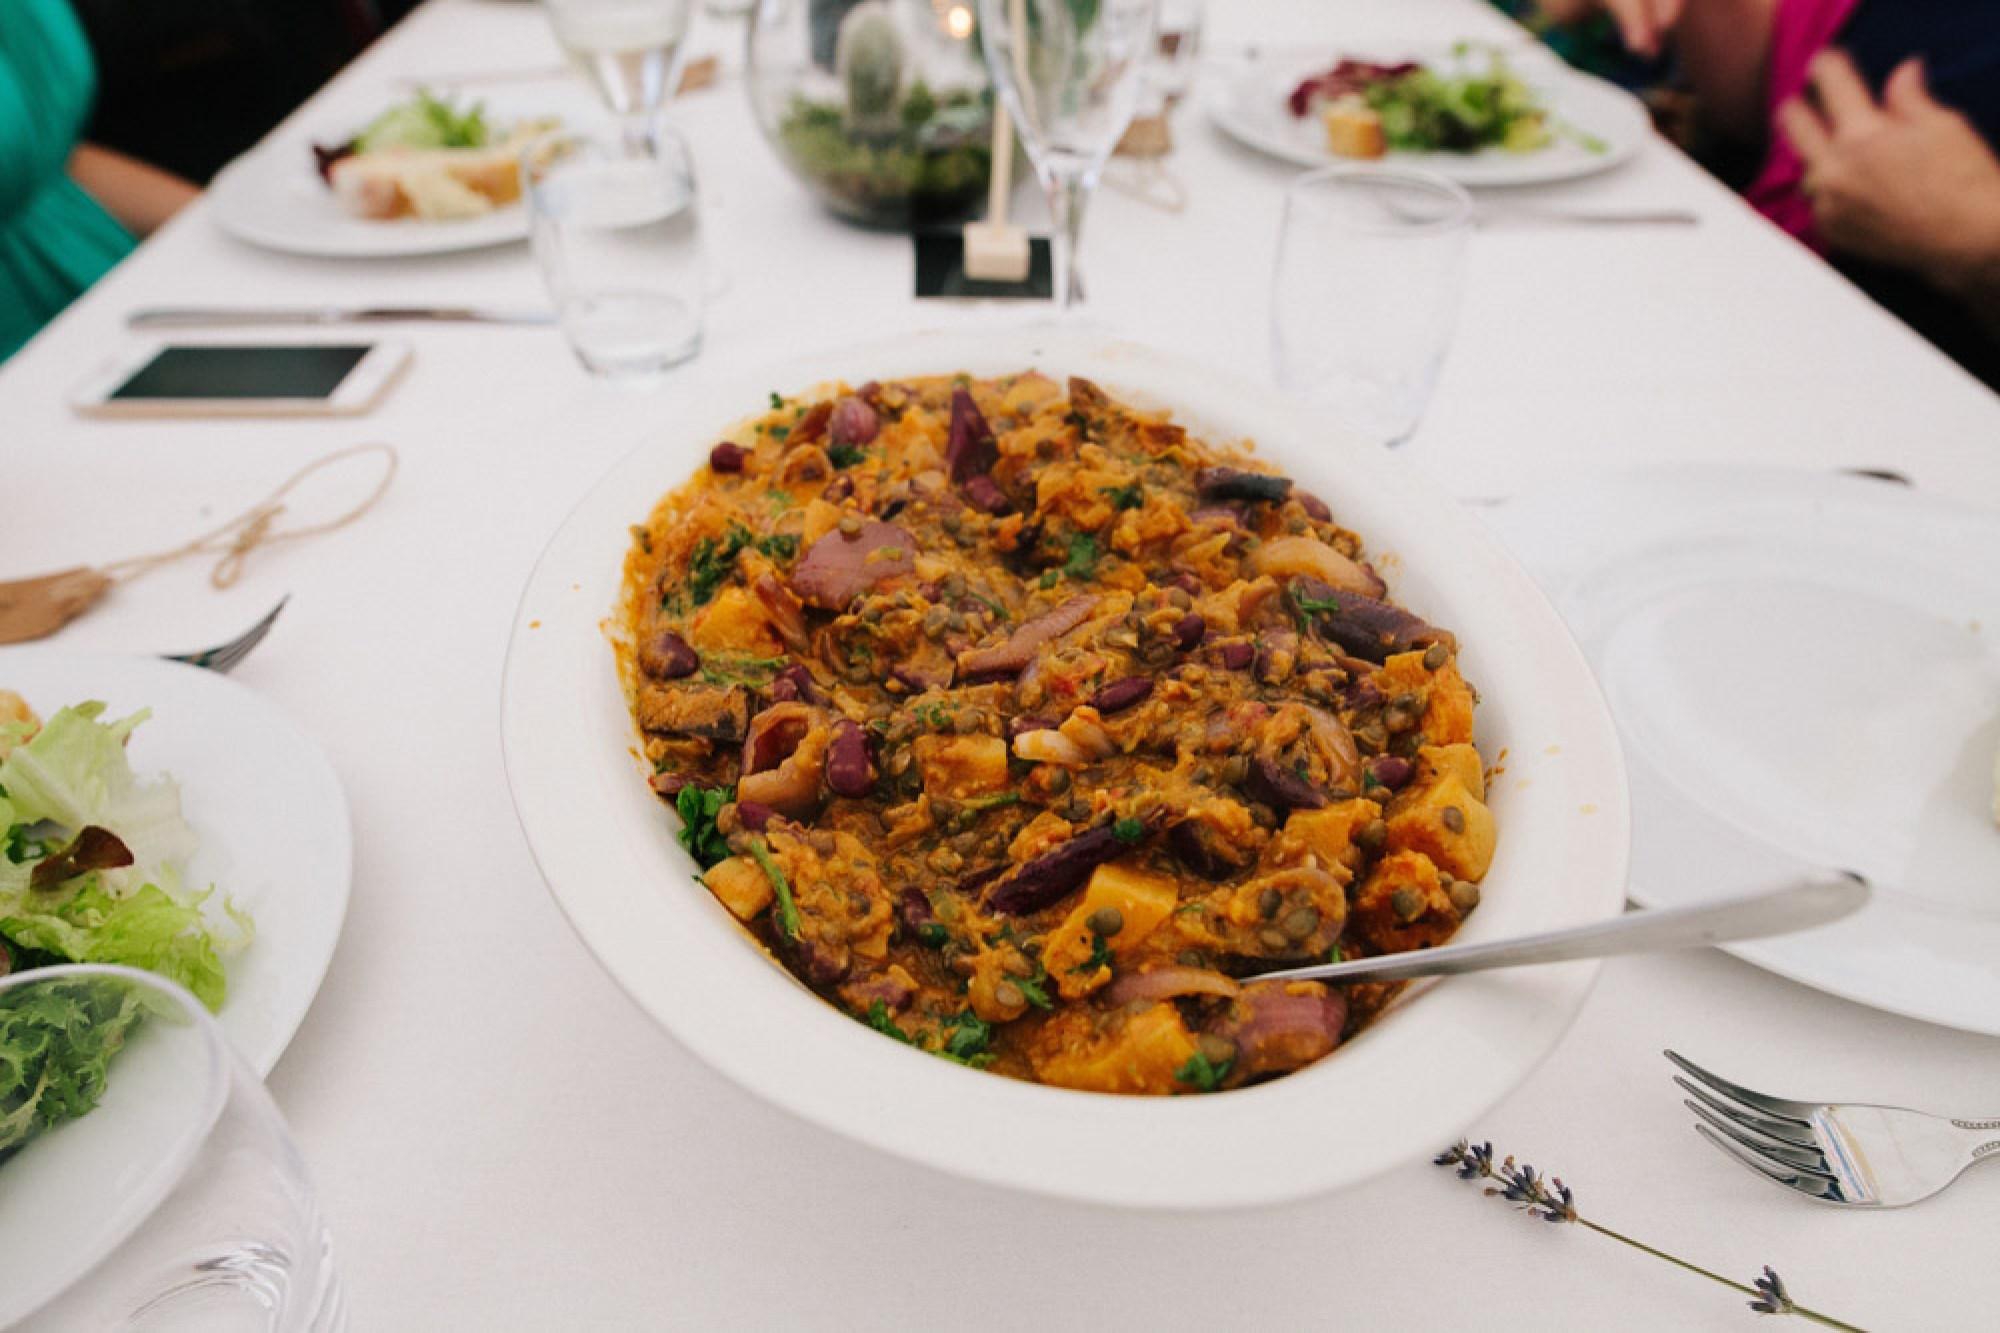 Vegetarian chilli by Fee Turner Catering